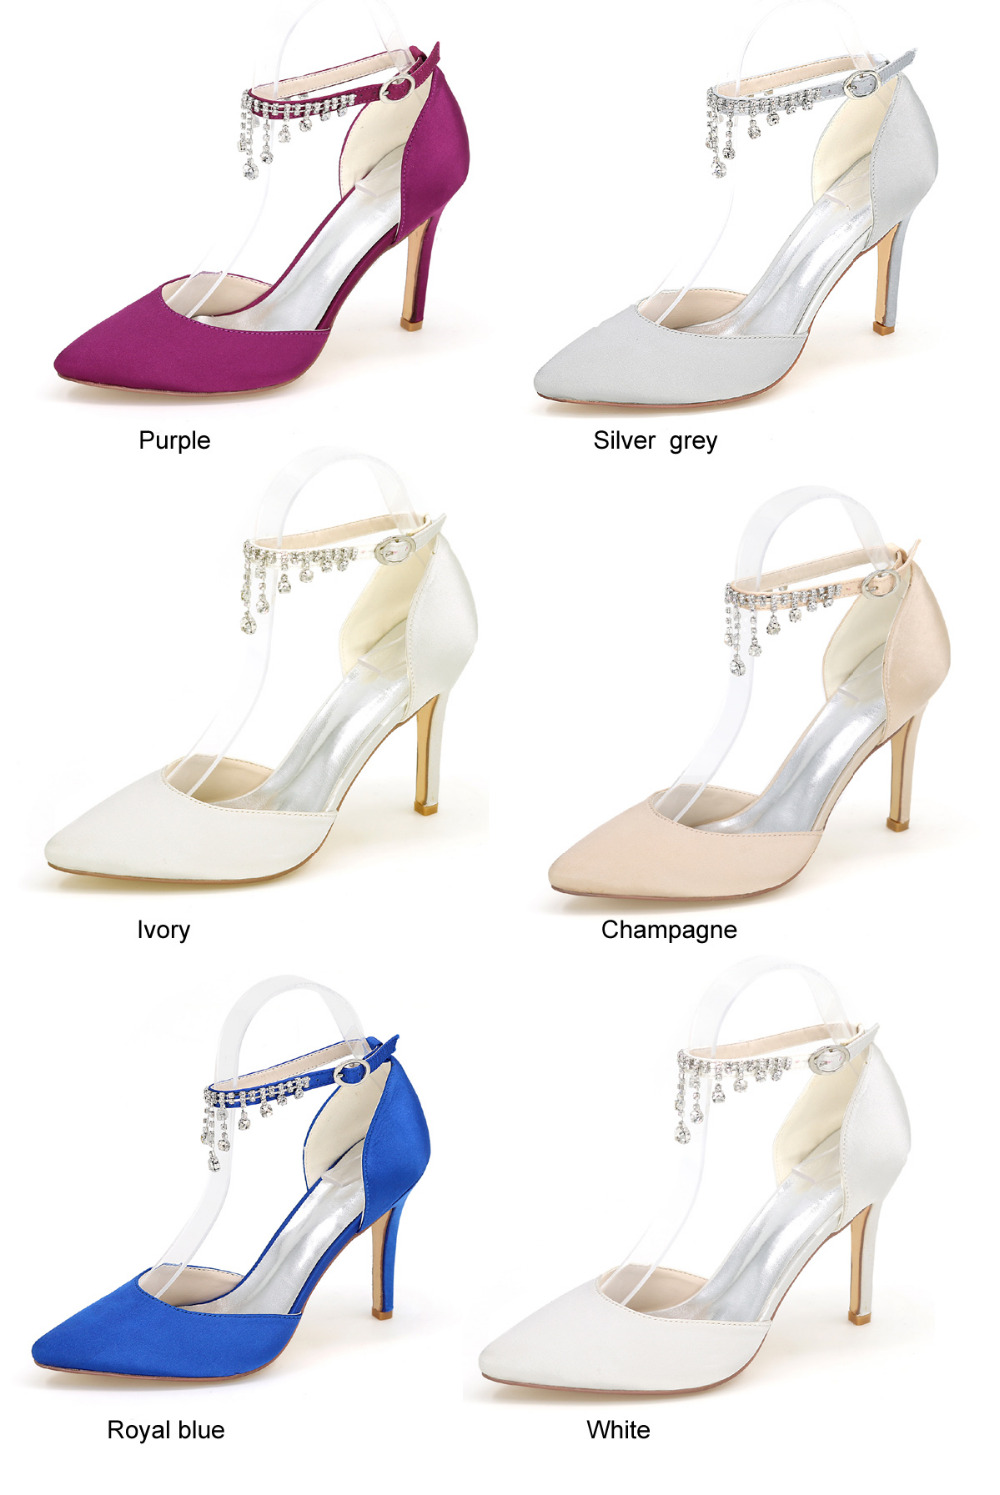 Creativesugar Pointed toe satin dress shoes with crystal tassel ankle strap  summer D orsay pumps bridal wedding party prom heels-in Women s Pumps from  Shoes ... 67a385ca5a2